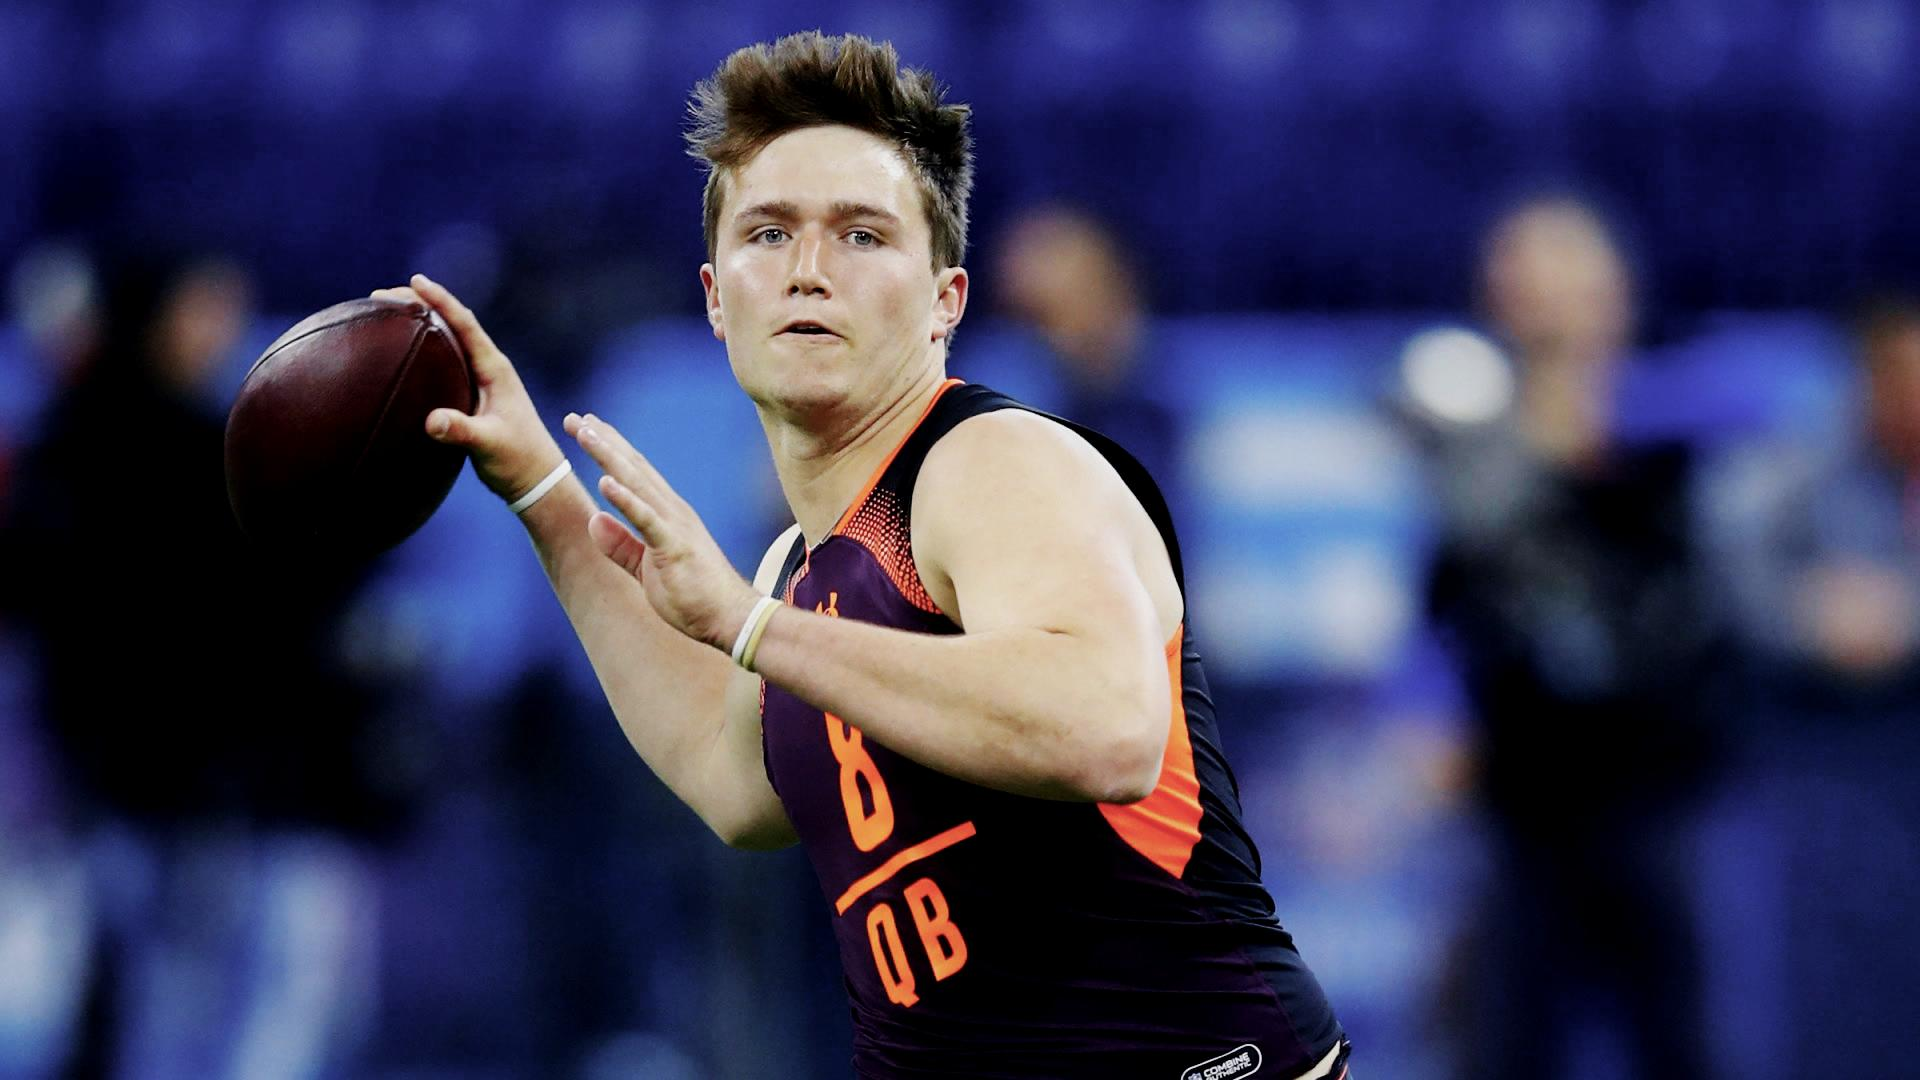 Best of PFT: Cardinals, Giants keep everyone guessing ahead of NFL draft